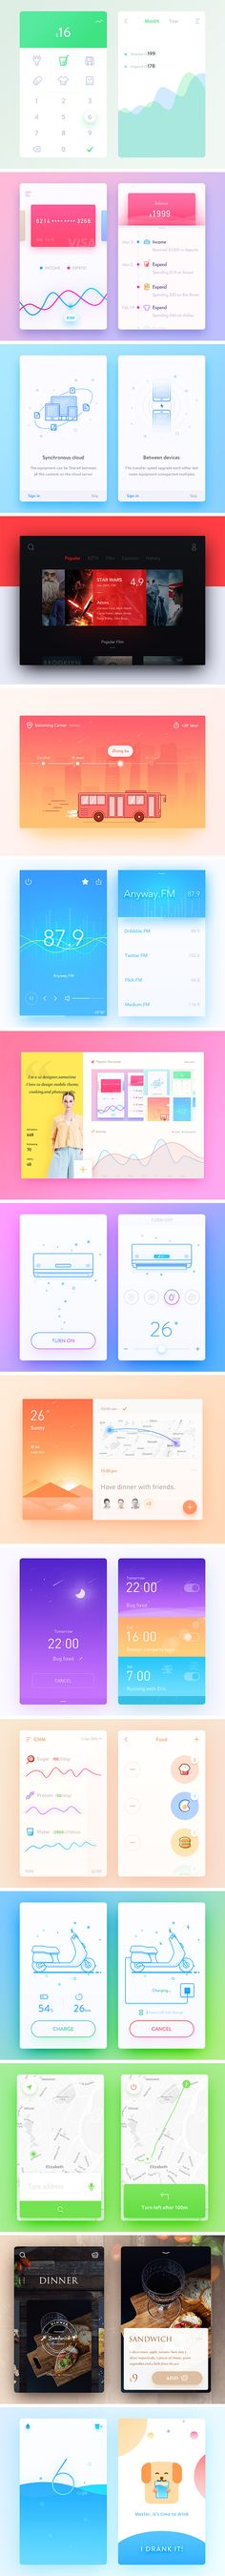 Inspirational UI Elements vol. 2